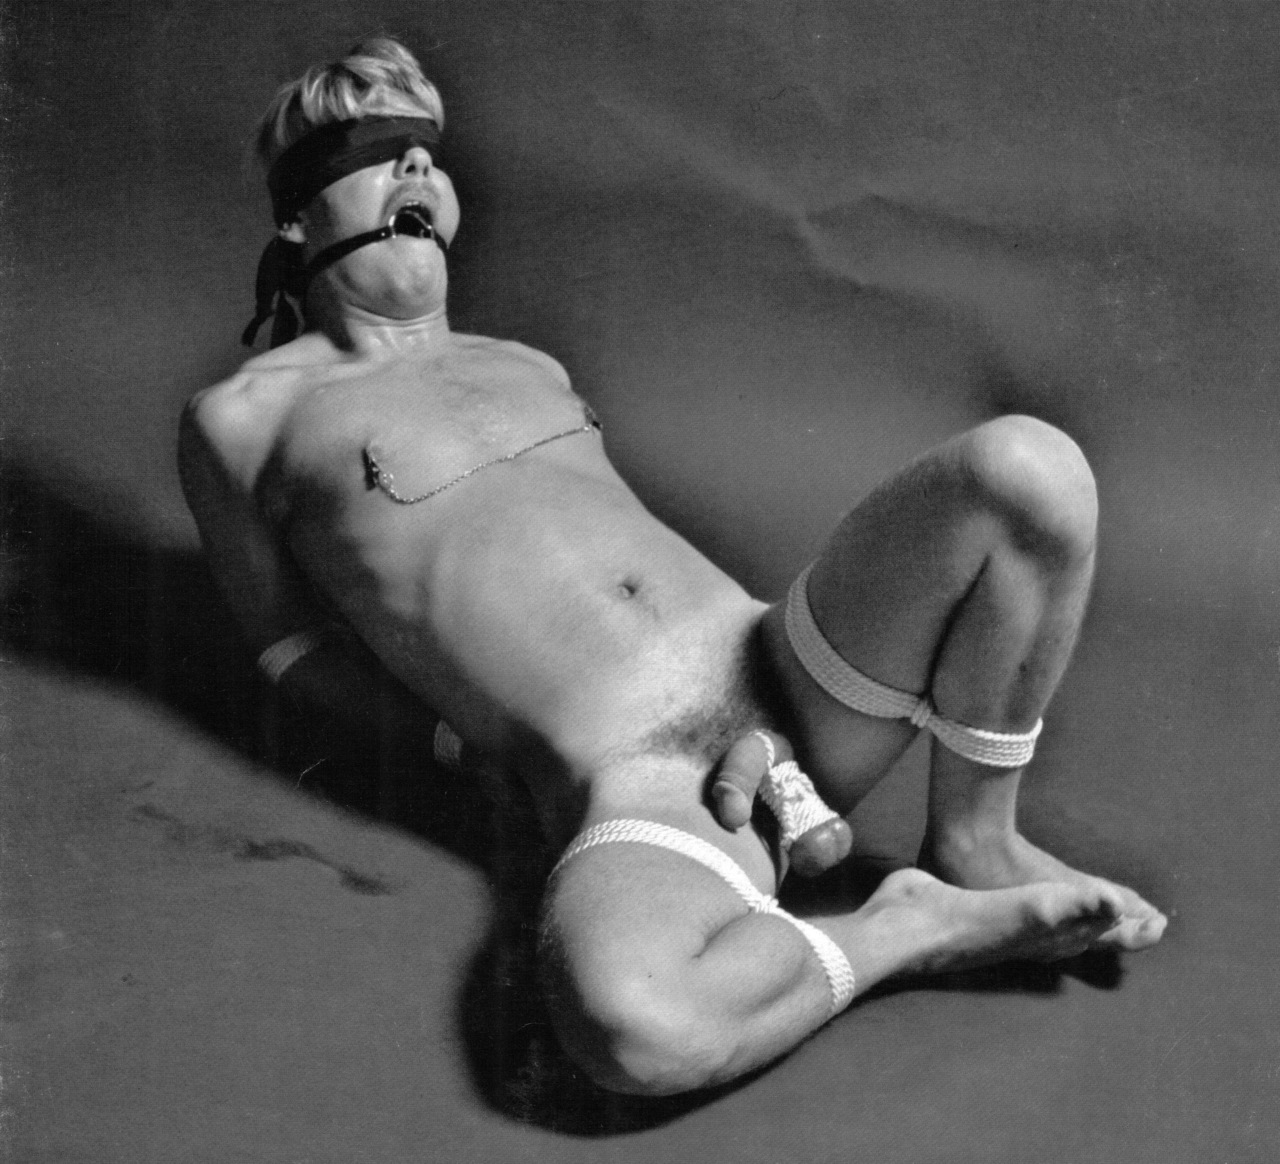 Retro bdsm tumblr